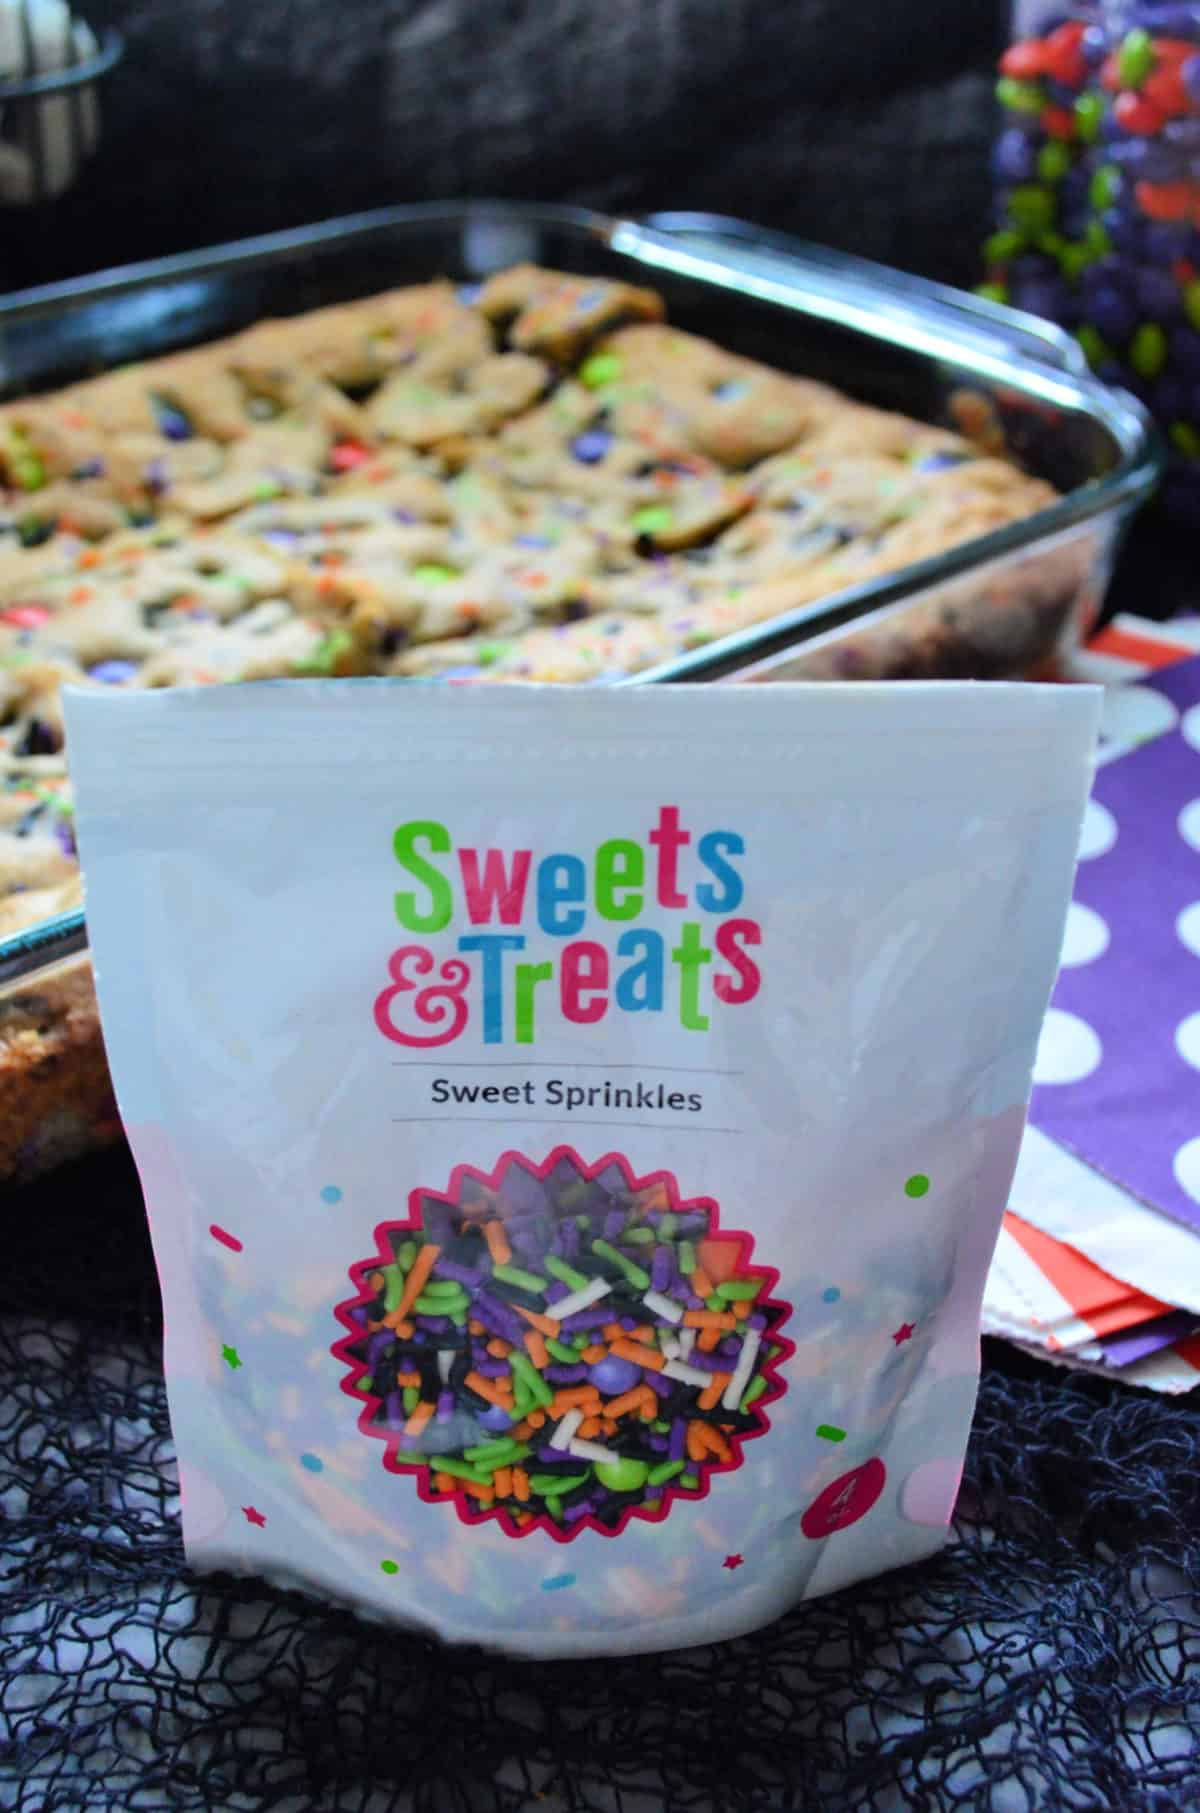 Bag of Sweets & Treats Sprinkles in orange, green, and purple with cookie bar in background.